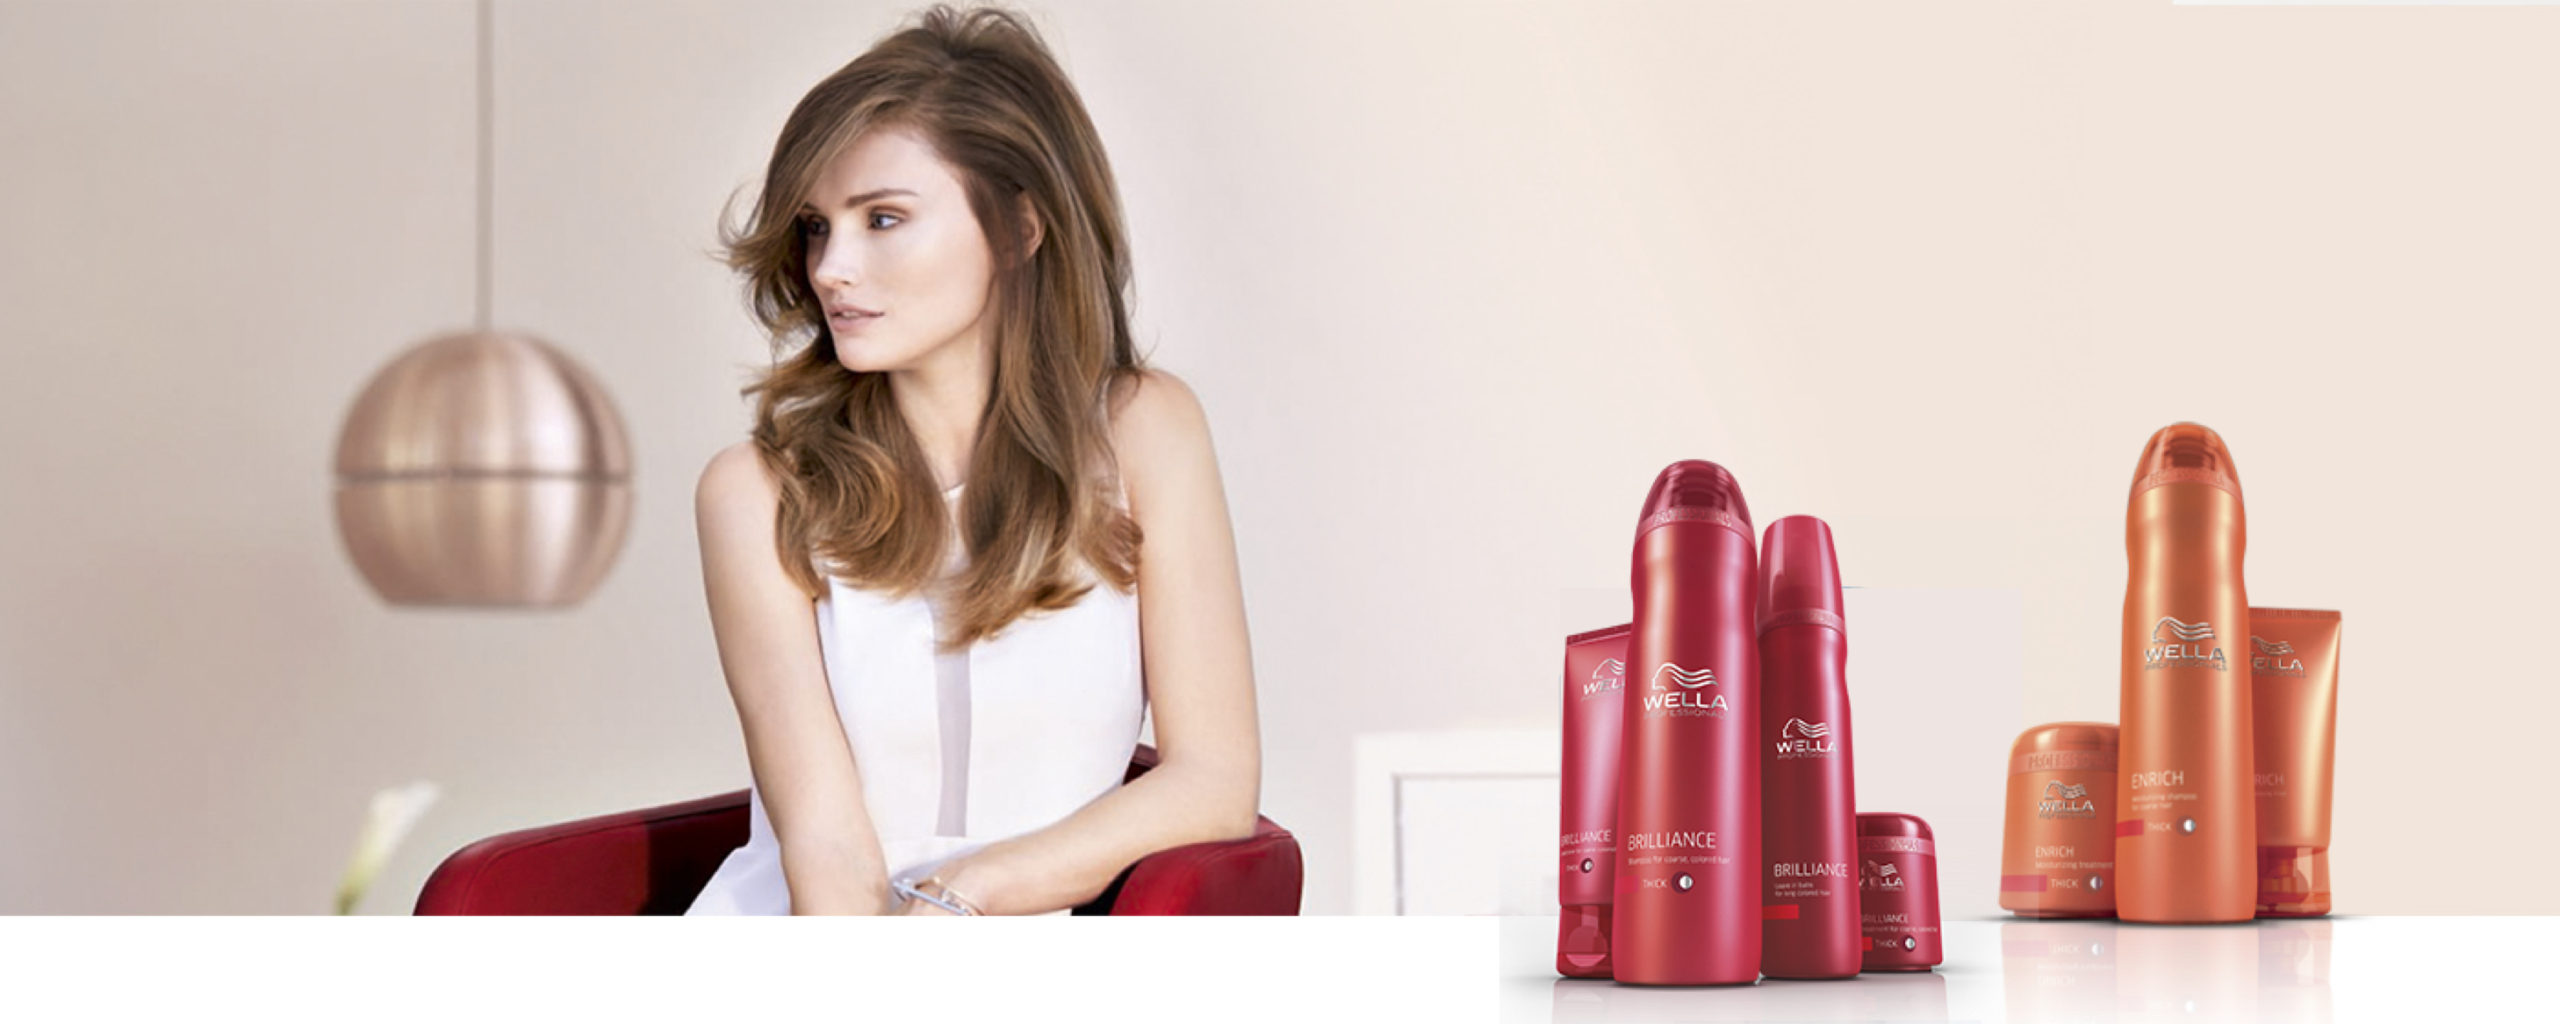 Wella hair products: Wella professional hair care